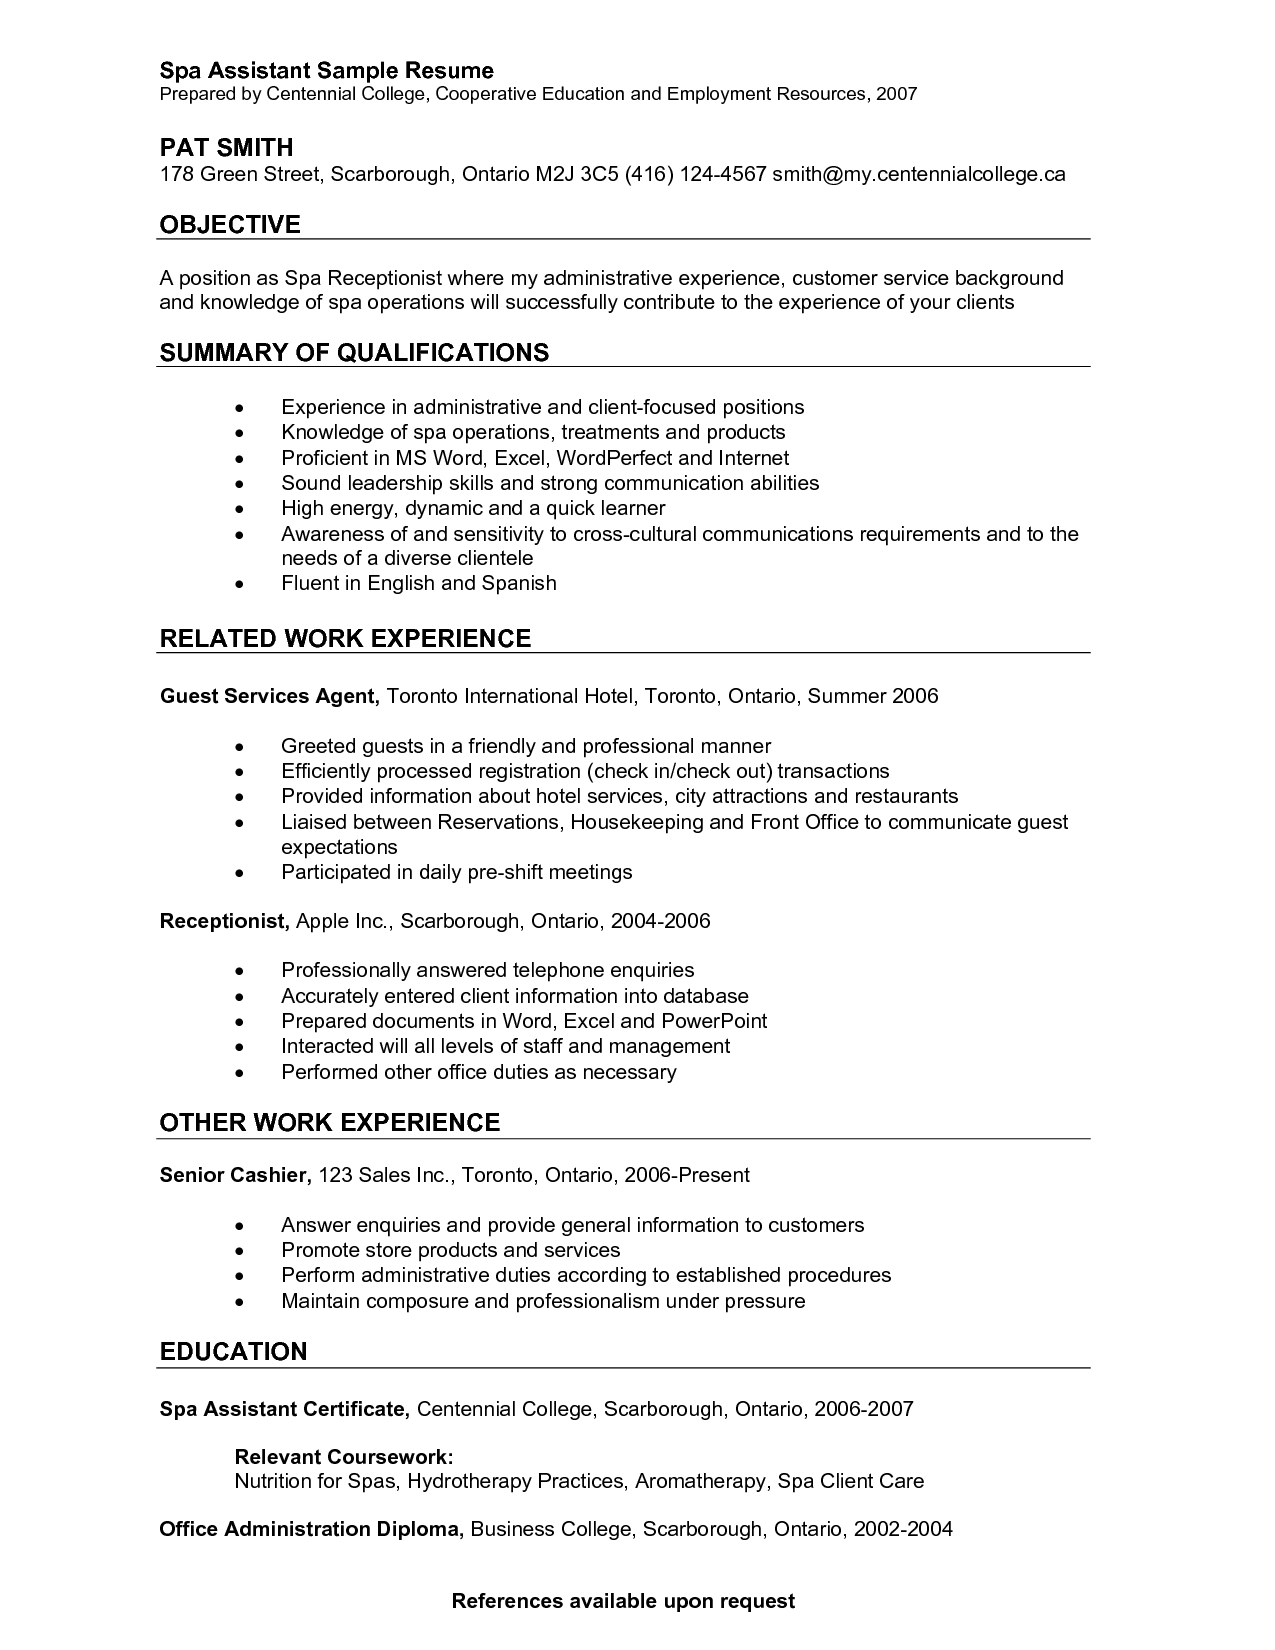 Receptionist Resume Templates Medical Receptionist Resume Objective Samples  Resume  Pinterest